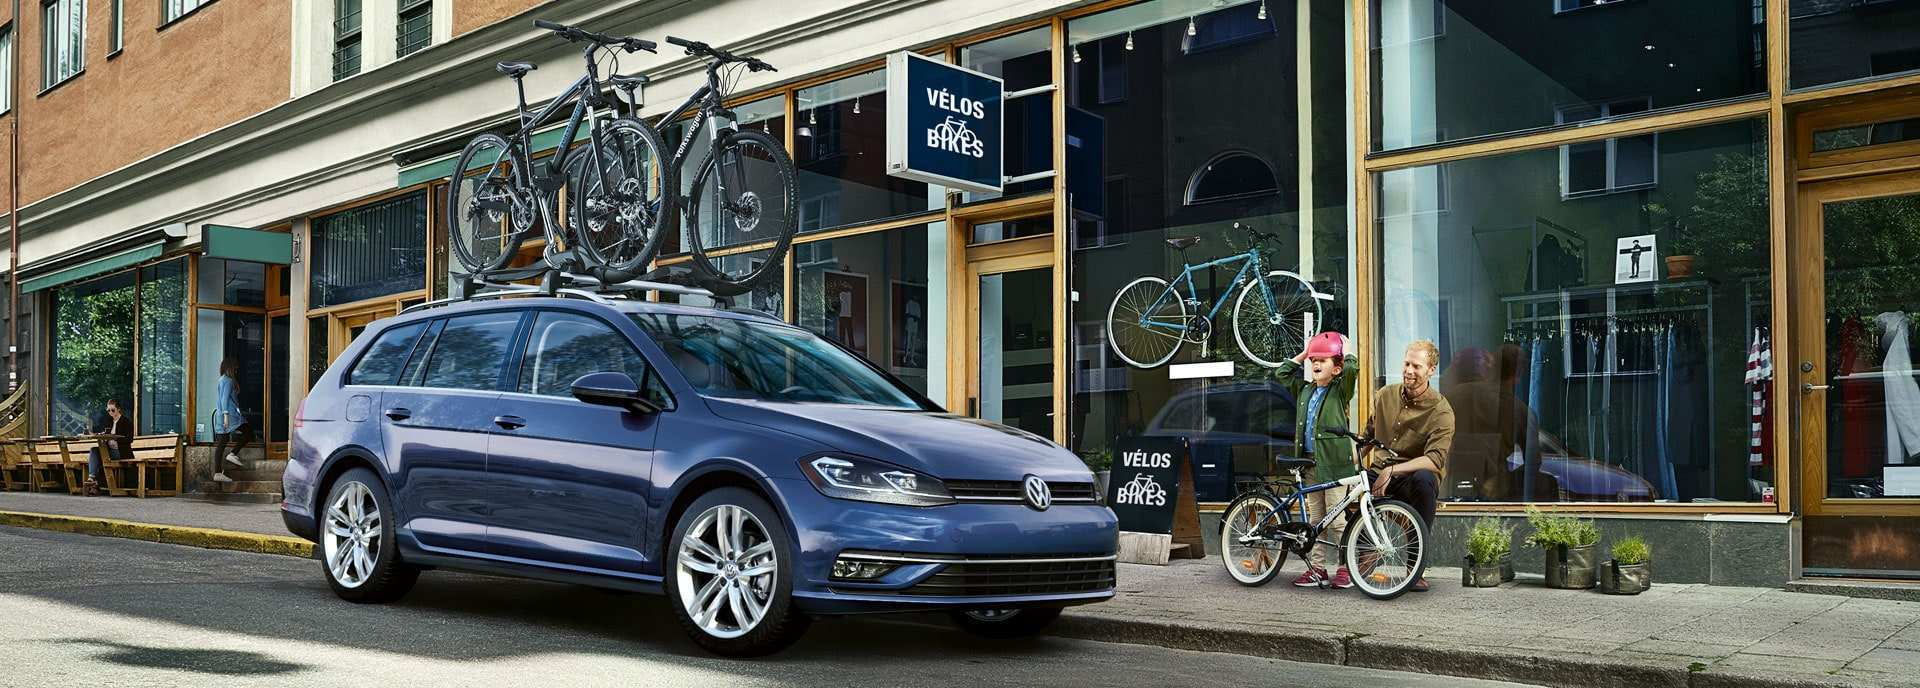 58 New 2019 Vw Golf Sportwagen Concept